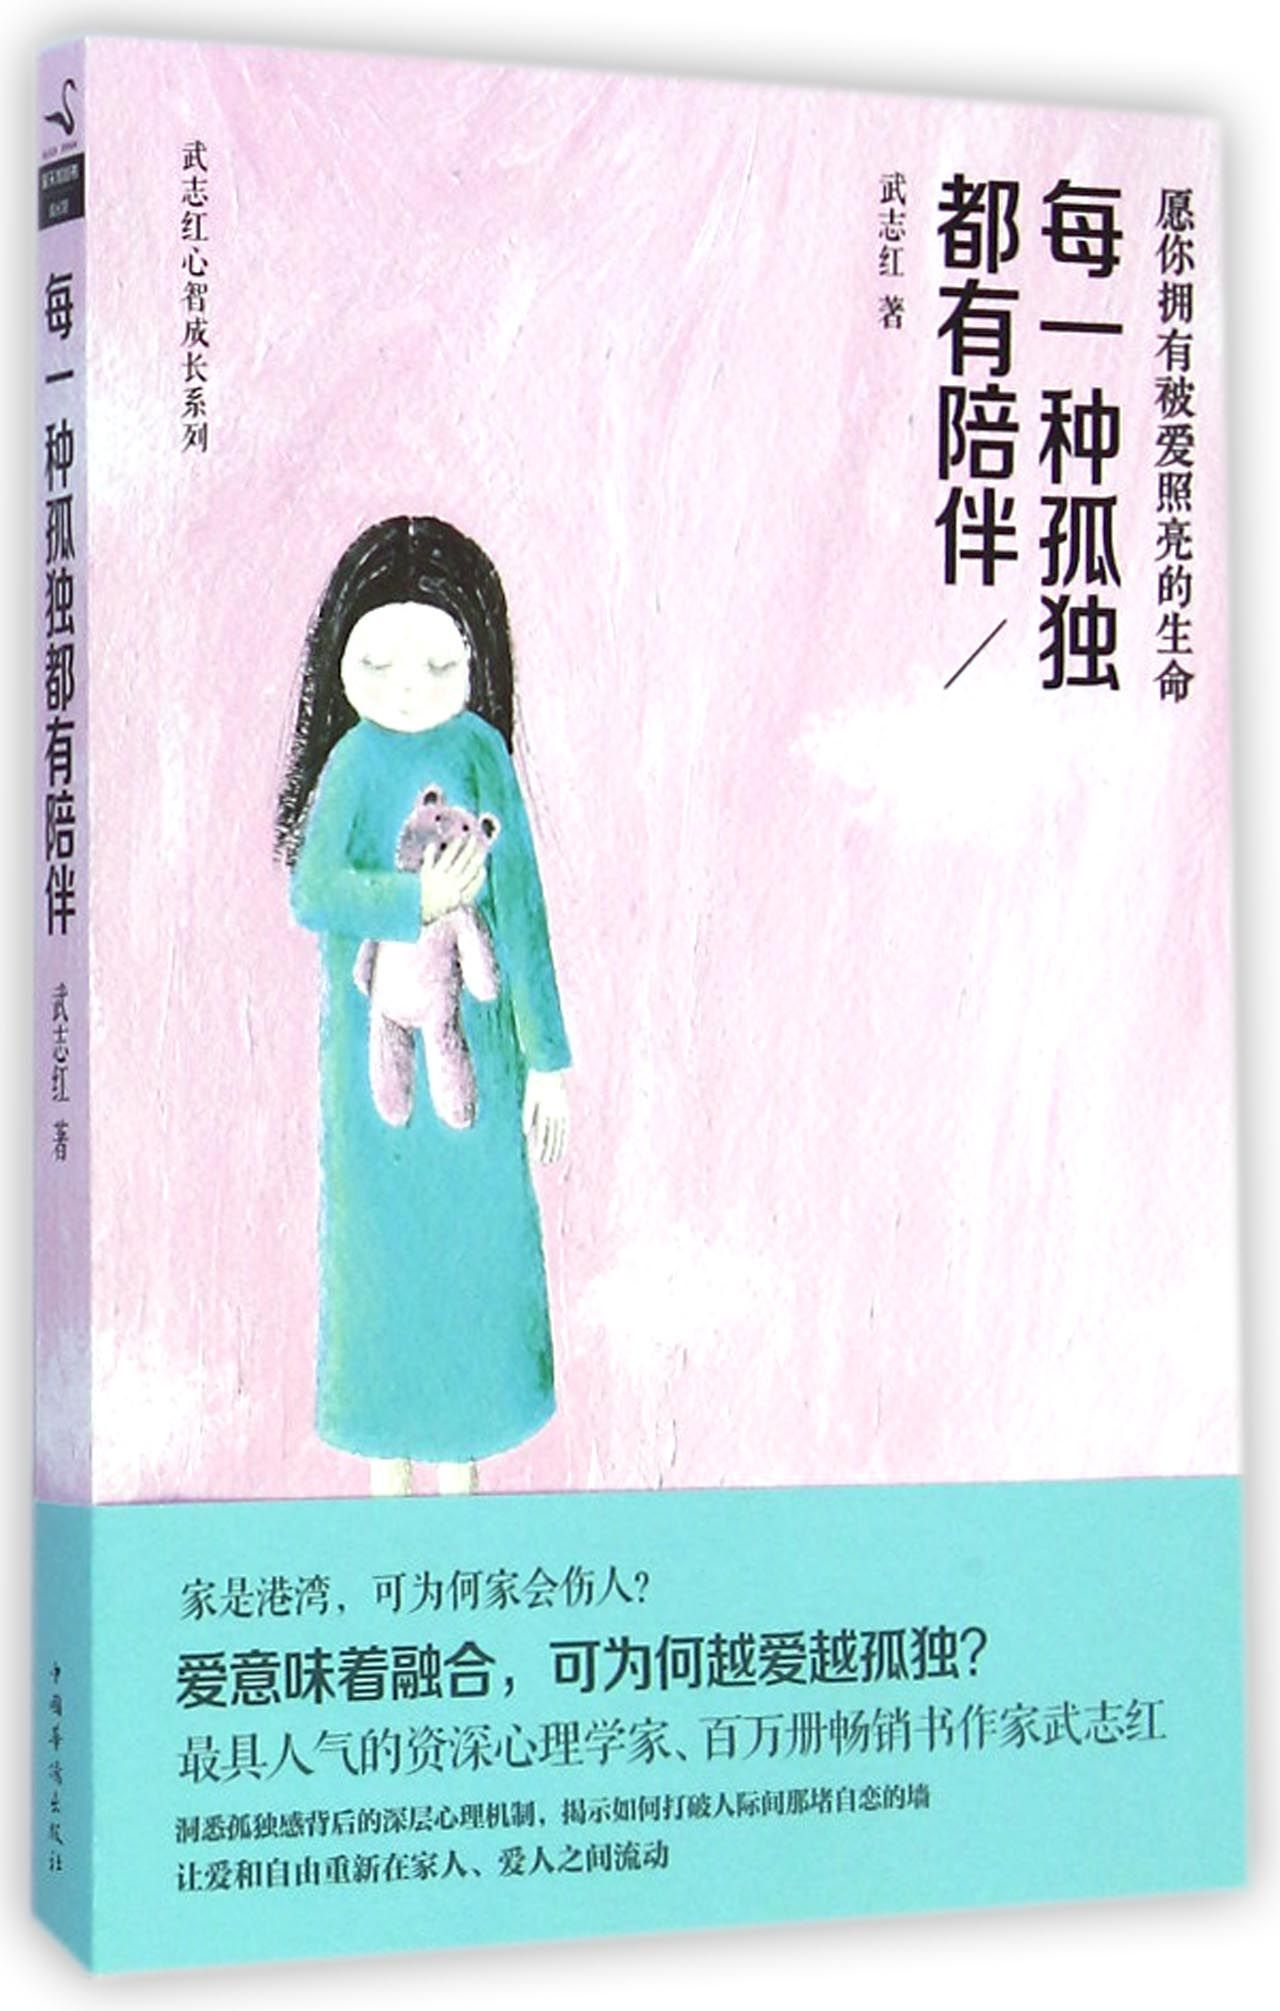 Every Kind of Loneliness Has Its Accompany (May You Have a Life Lightened Love) 每一种孤独都有陪伴 by Wu Zhi Hong 武志红